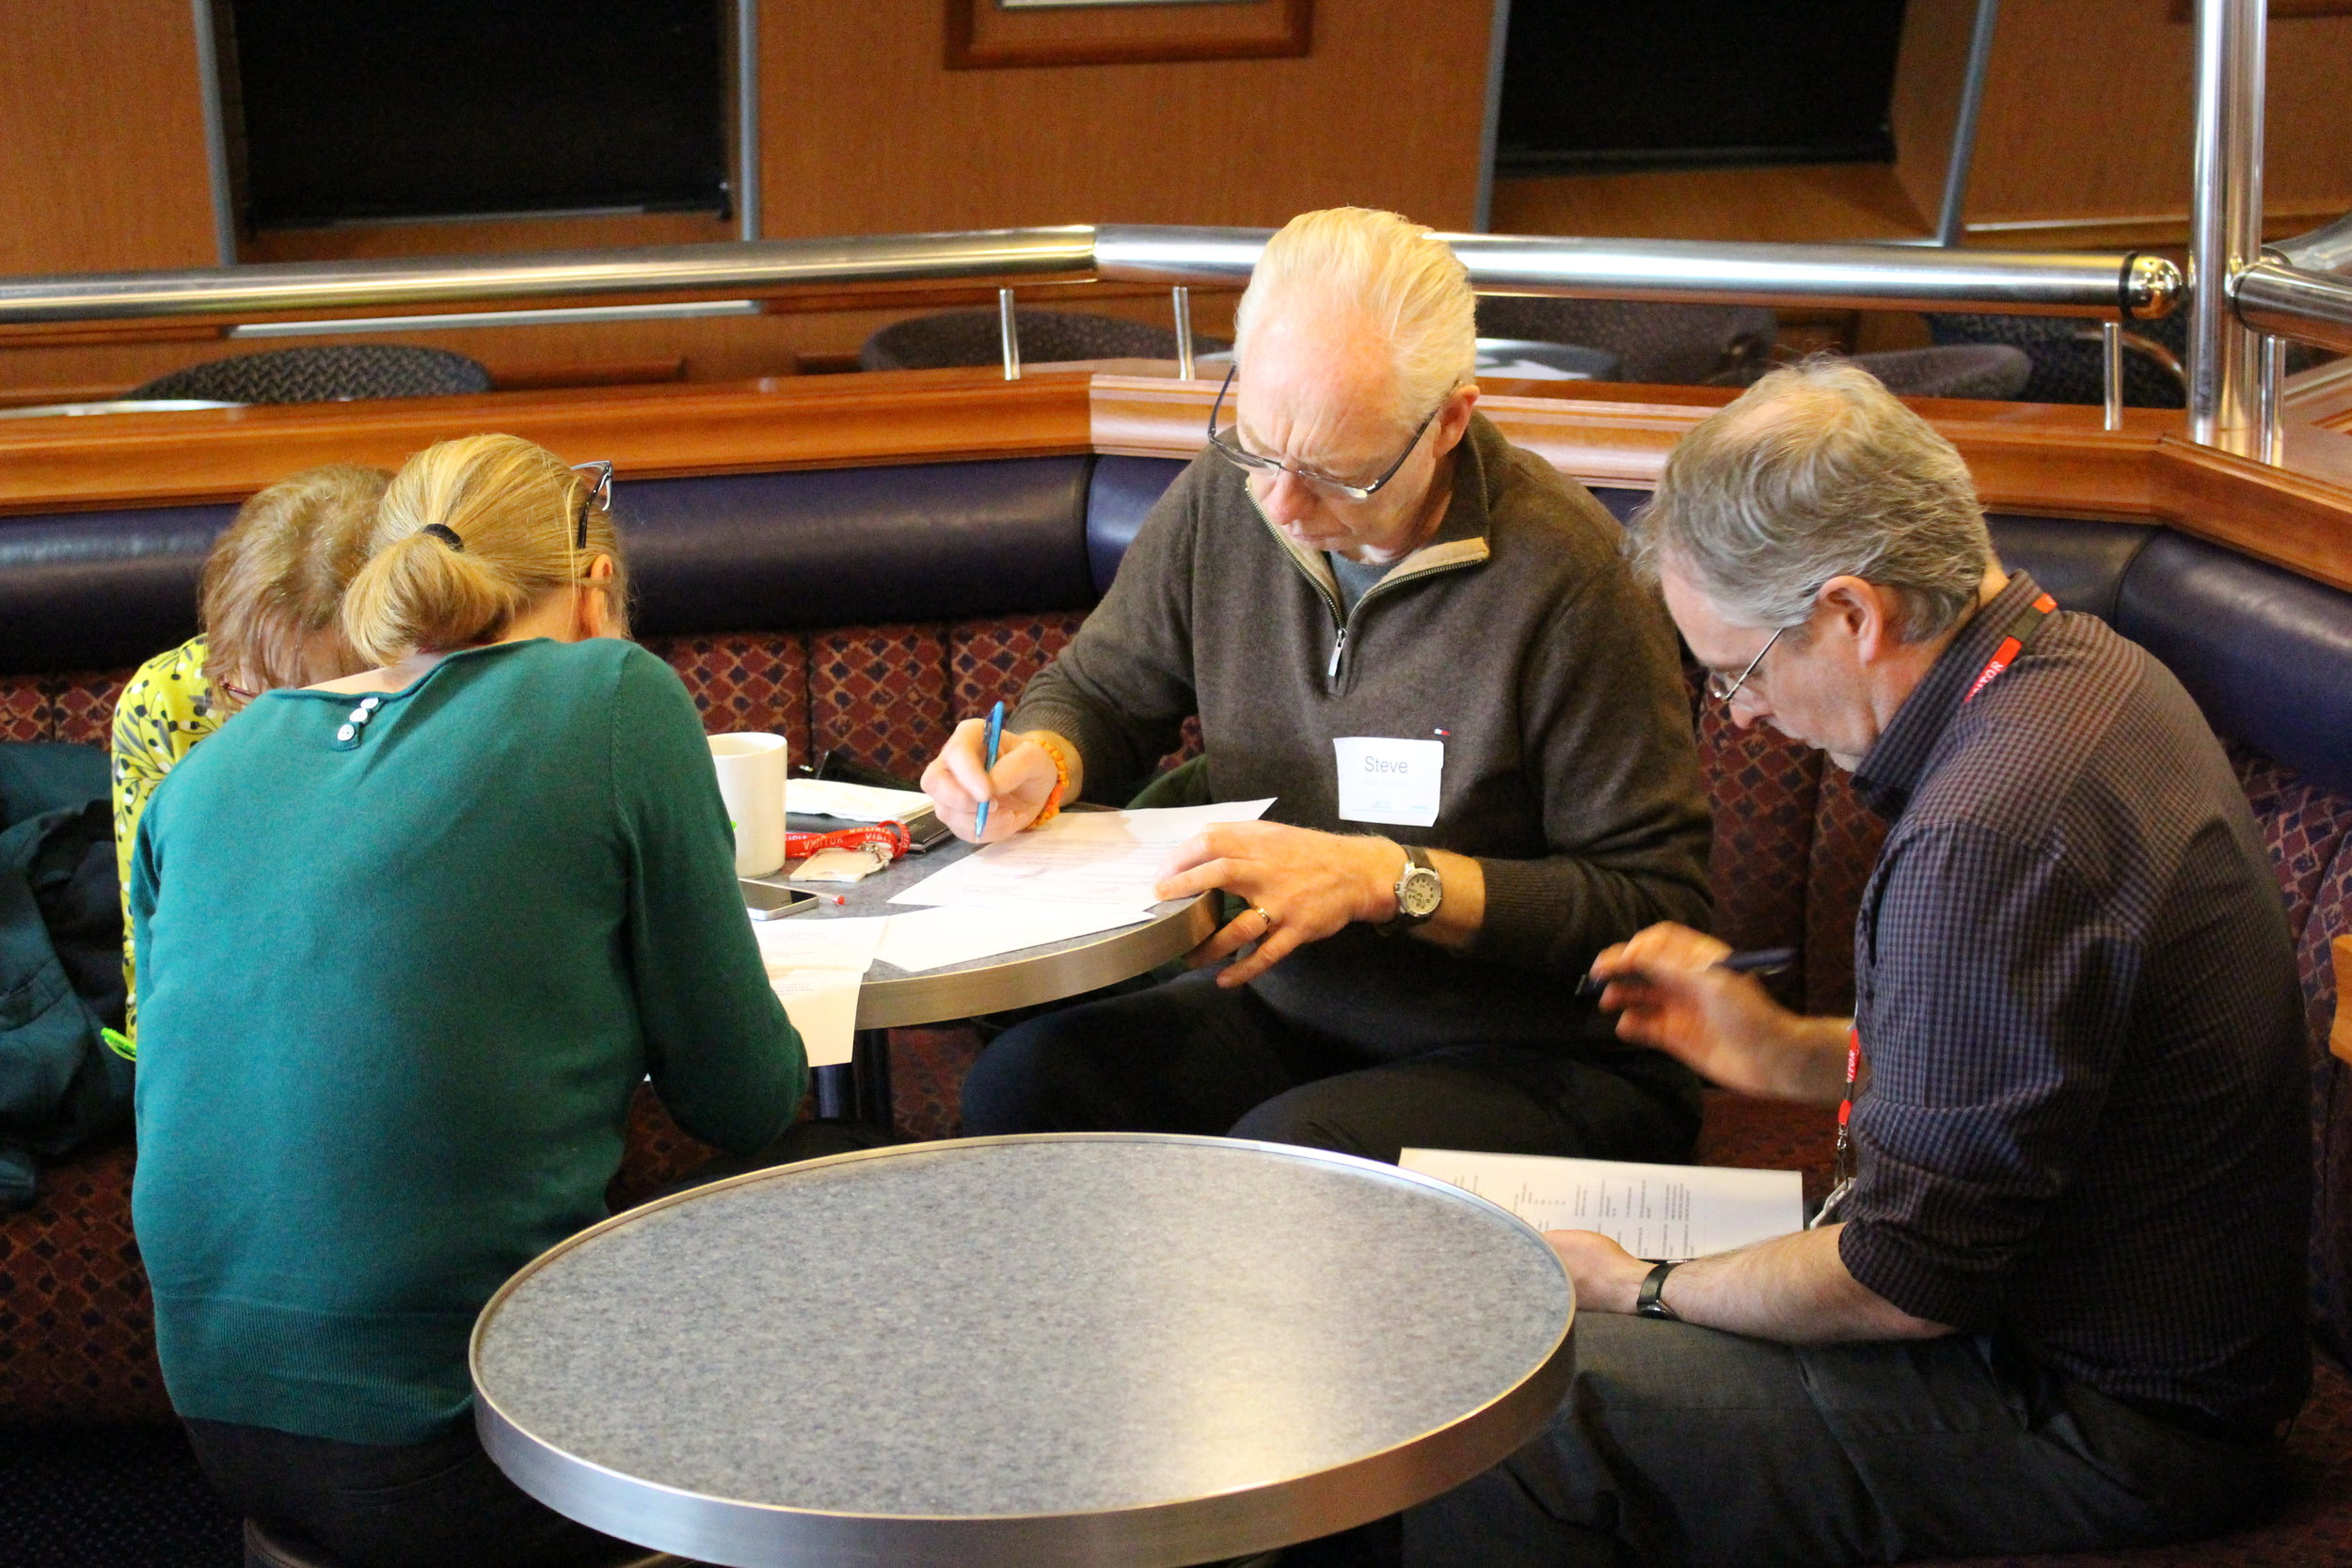 Image showing workshop participants considering questions and sharing their experiences (Image: NorthLink Ferries)